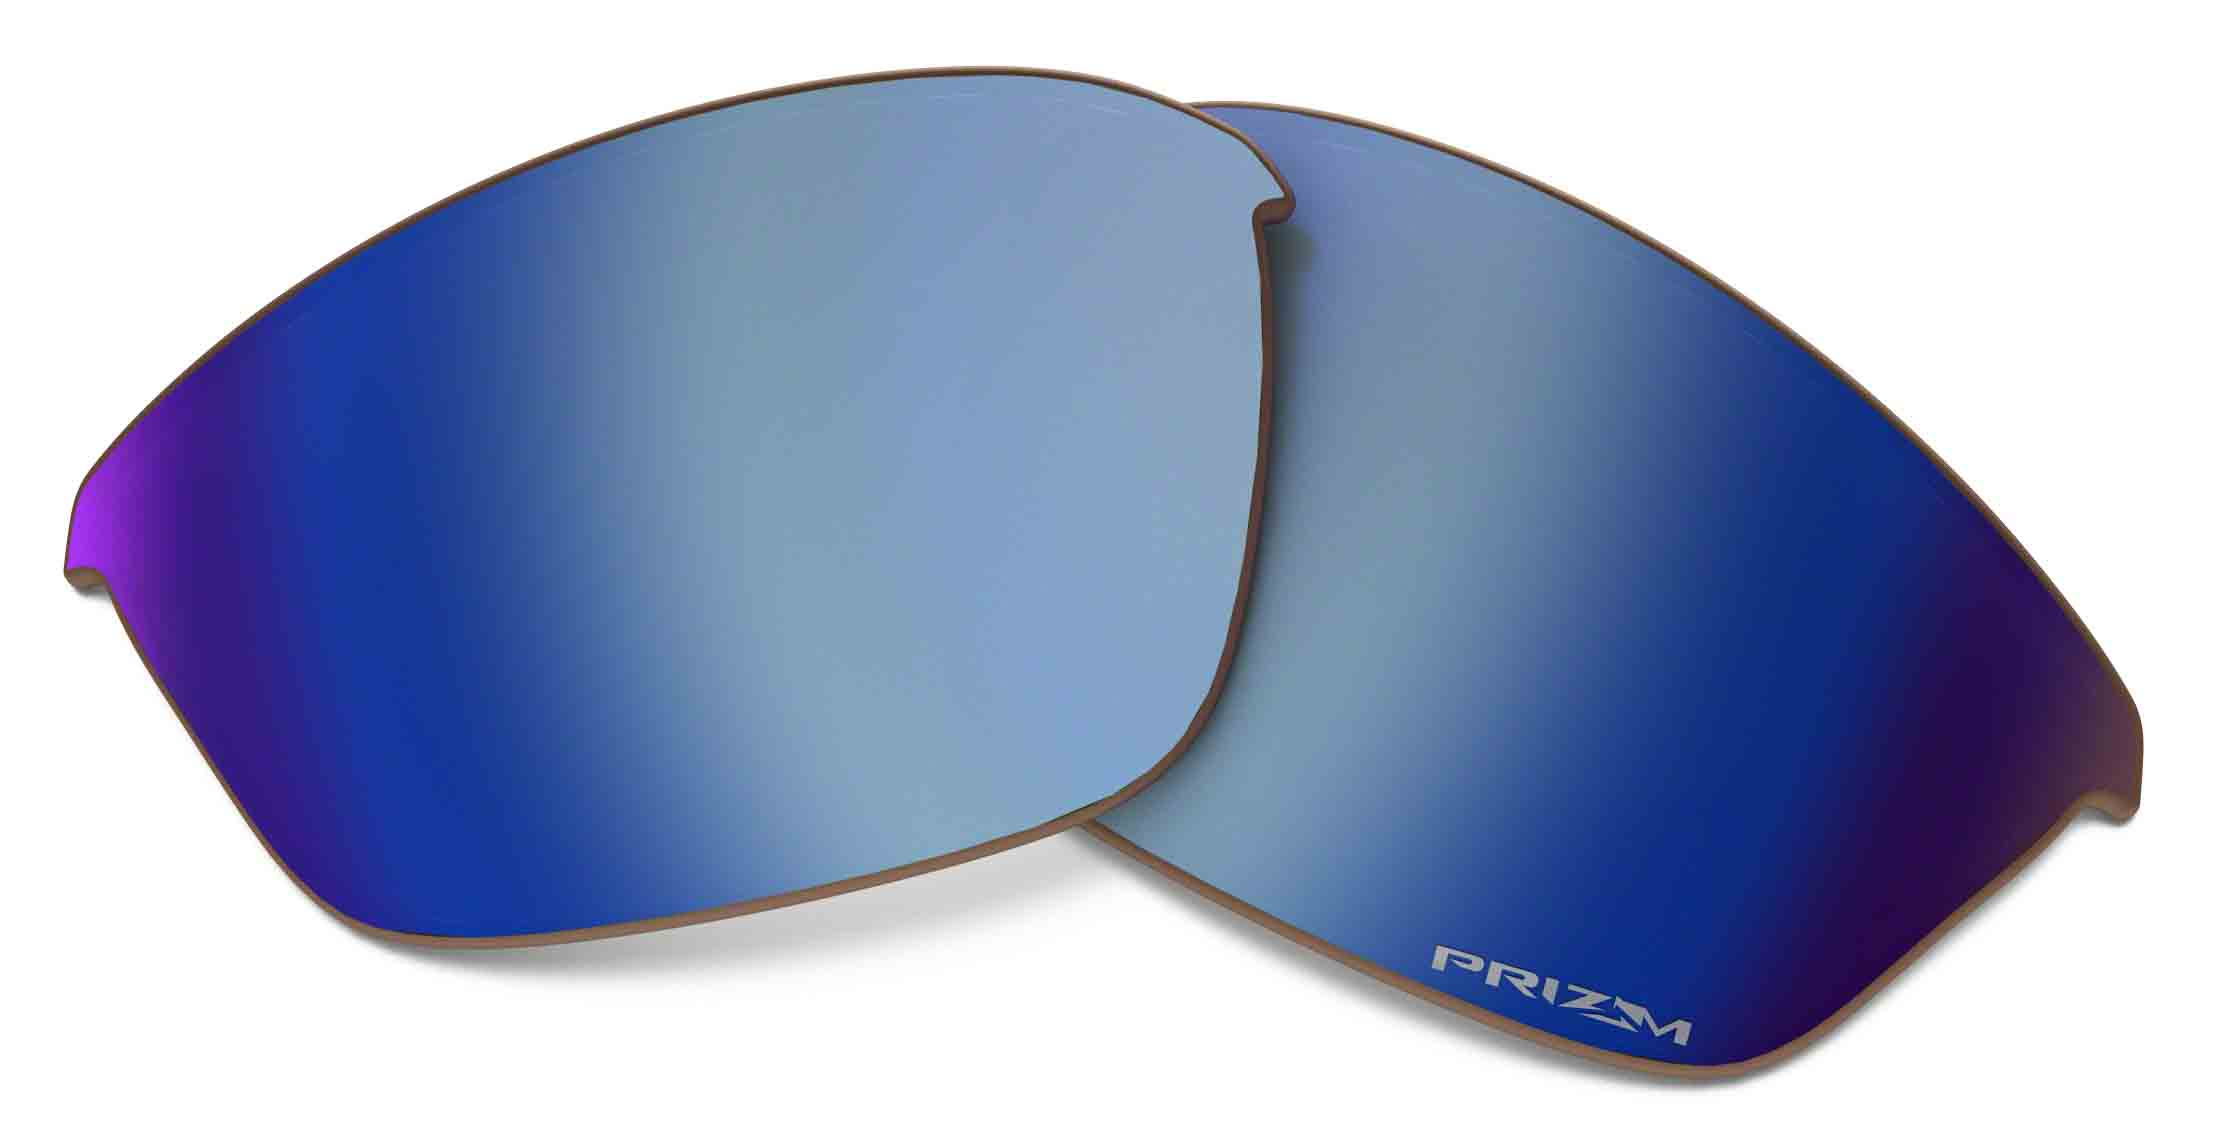 7015aeaca7c Best Oakley Lens For Water Sports « Heritage Malta